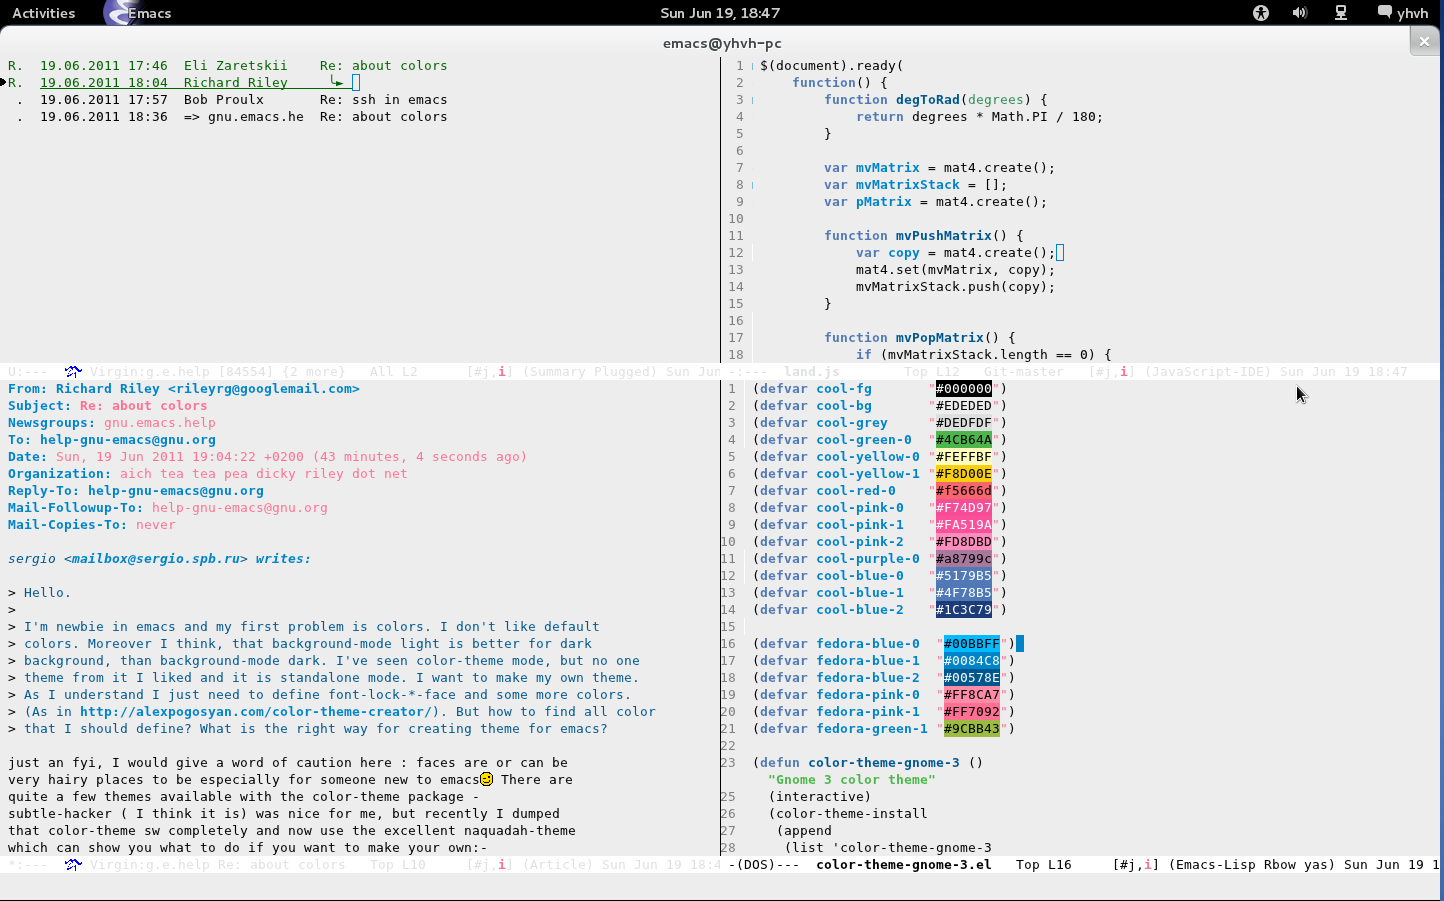 https://github.com/yhvh/color-theme-gnome-3-adwaita/raw/master/screenshot.png